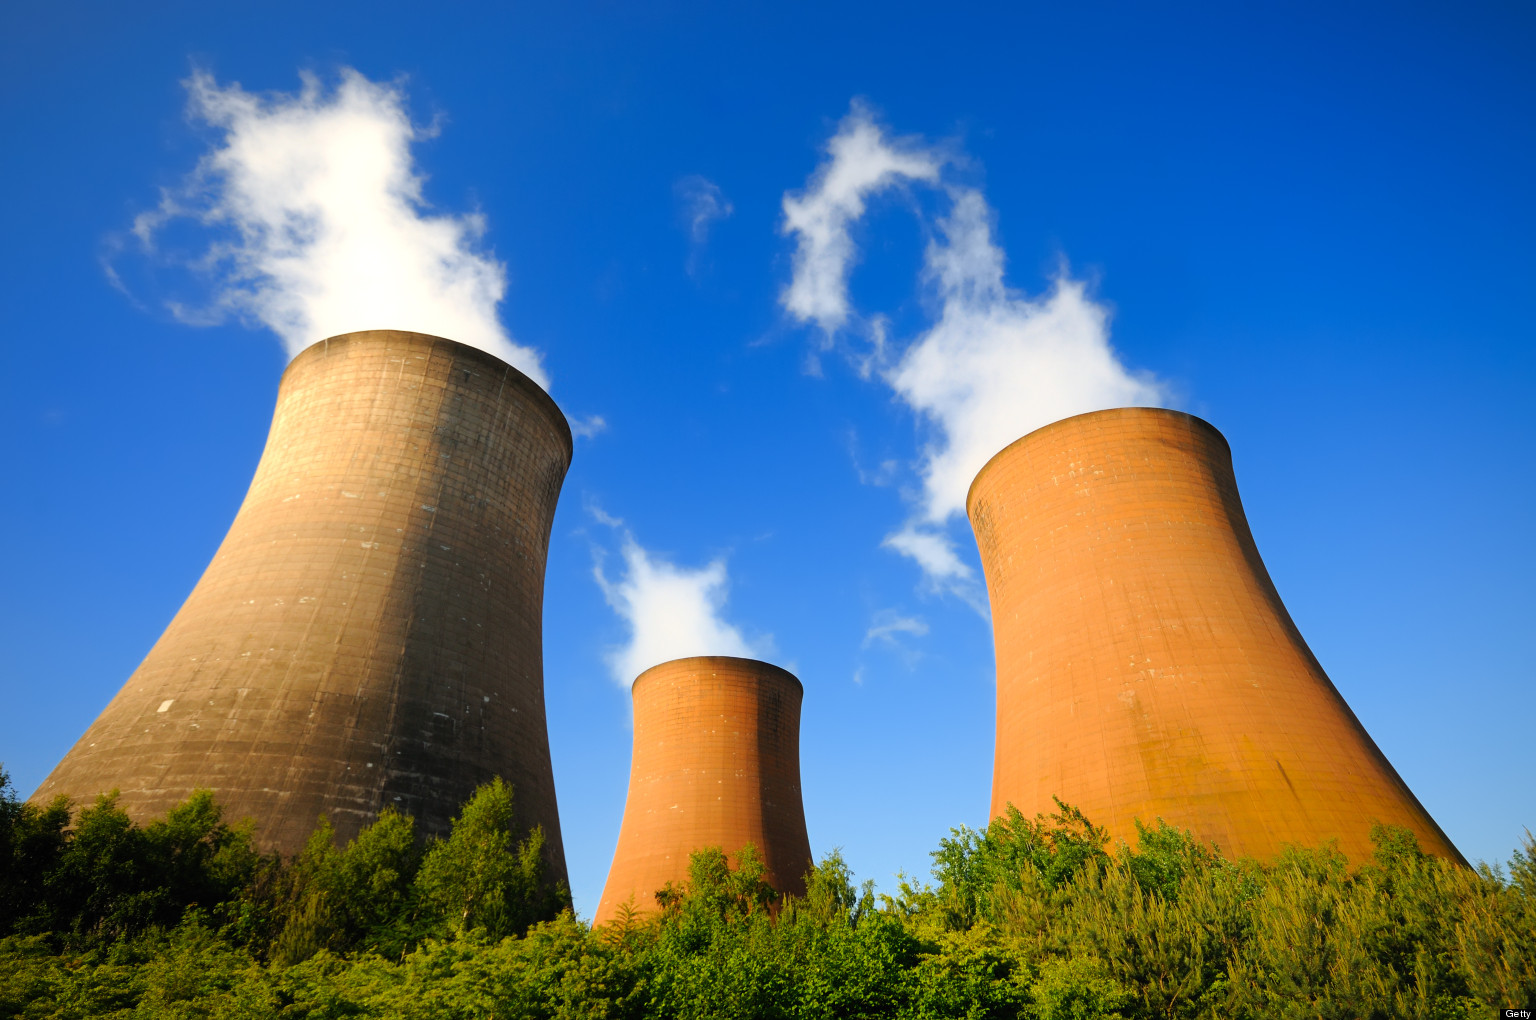 When will Australia consider nuclear energy?